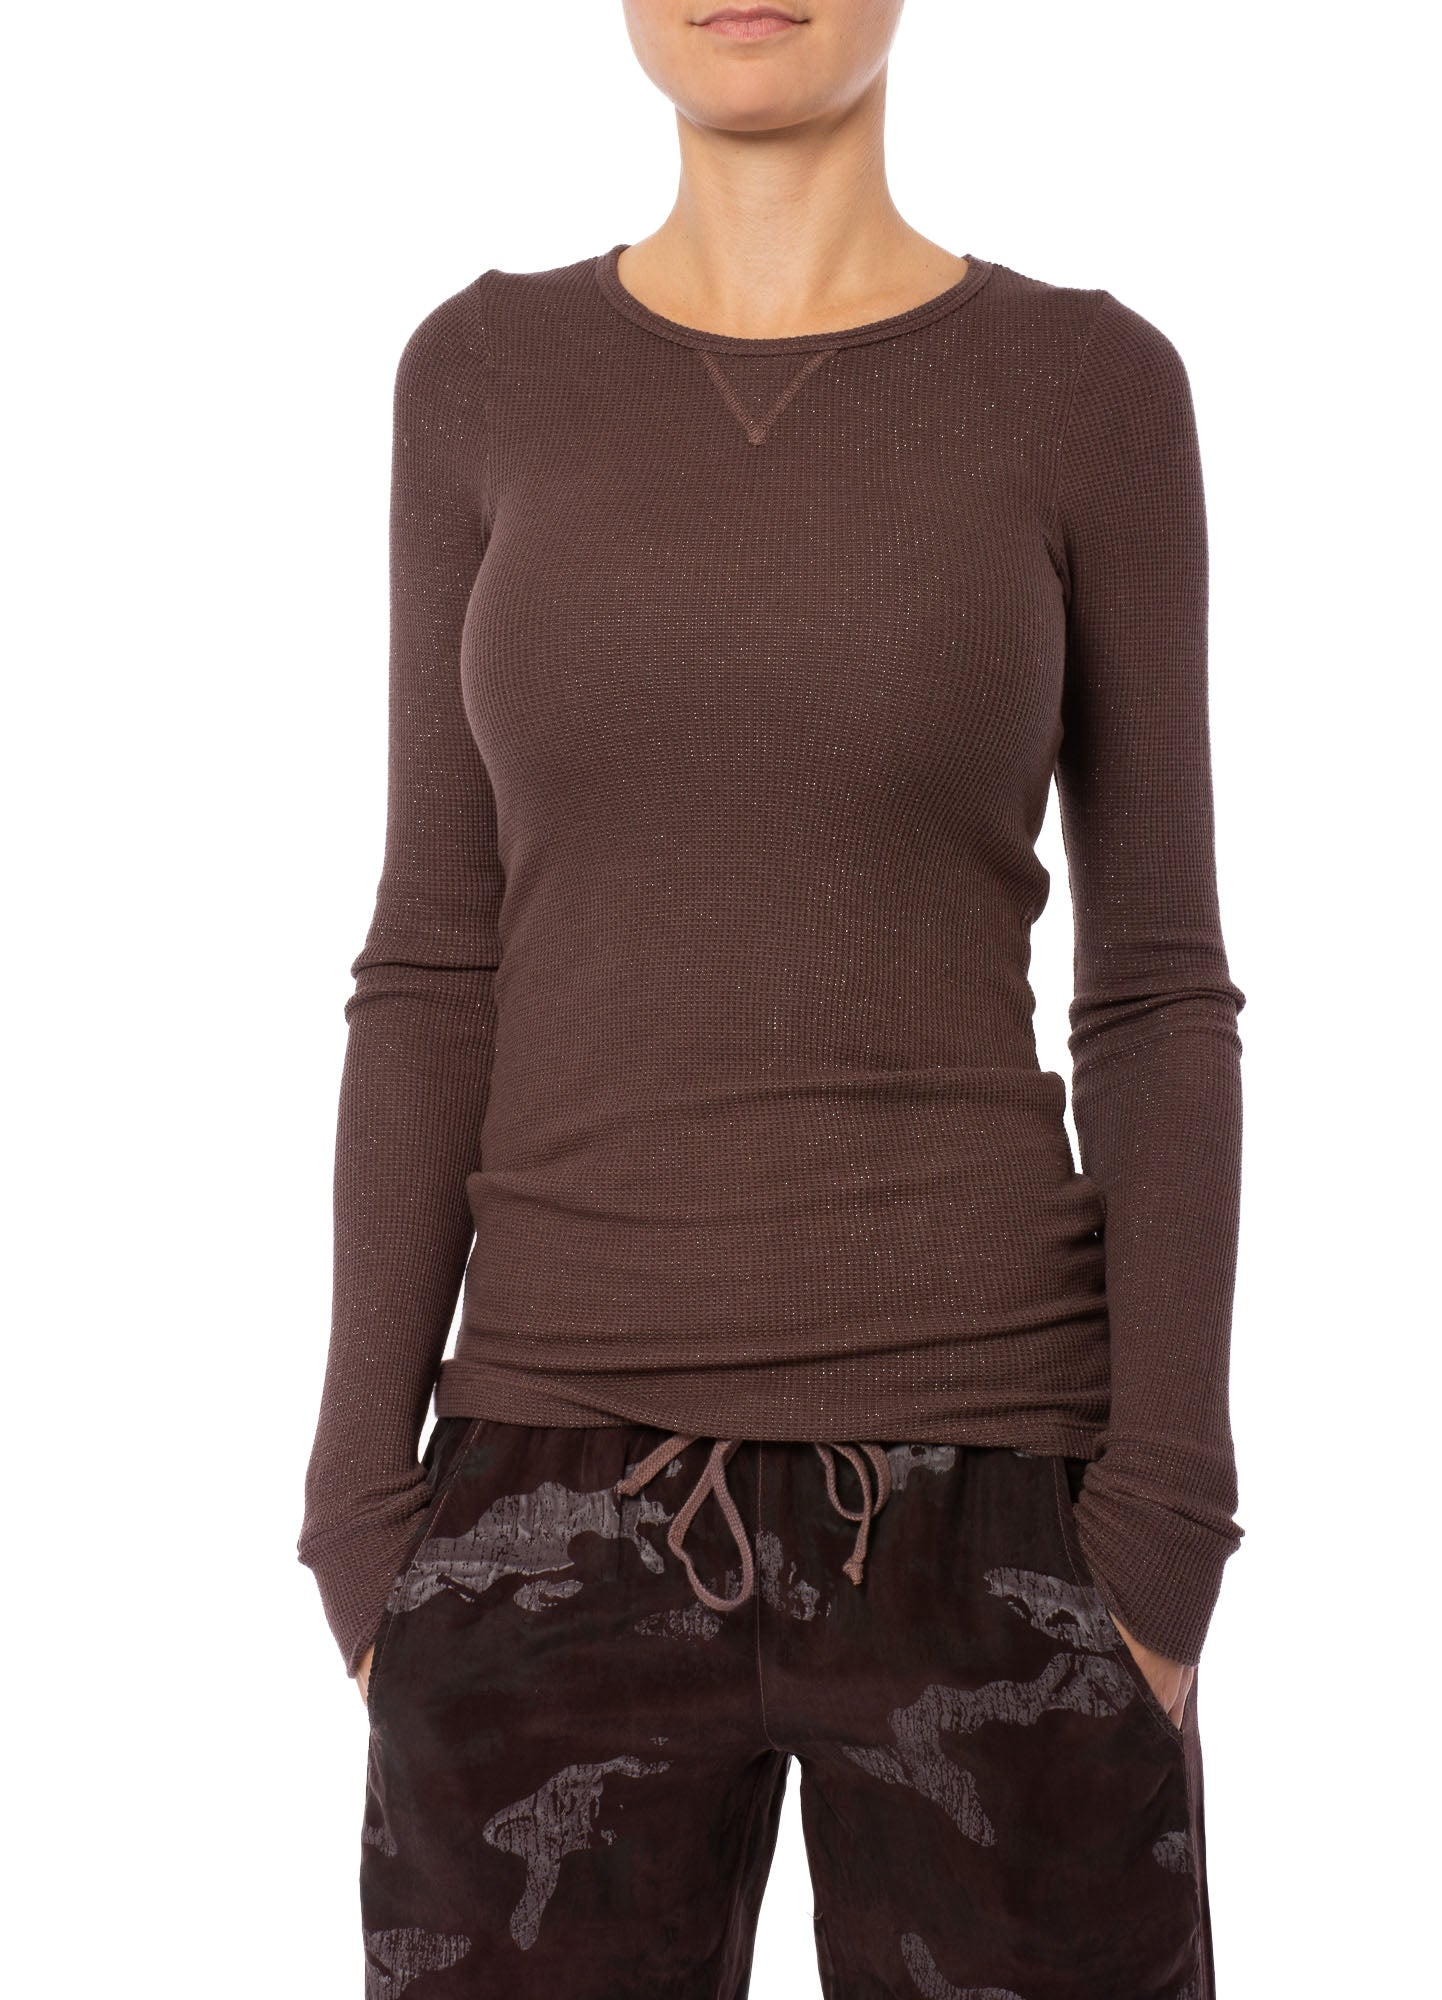 Hard Tail Forever - Thermal Long Sleeve T W/Silver Lurex (LTH-04, Mocha w/Silver Lurex)